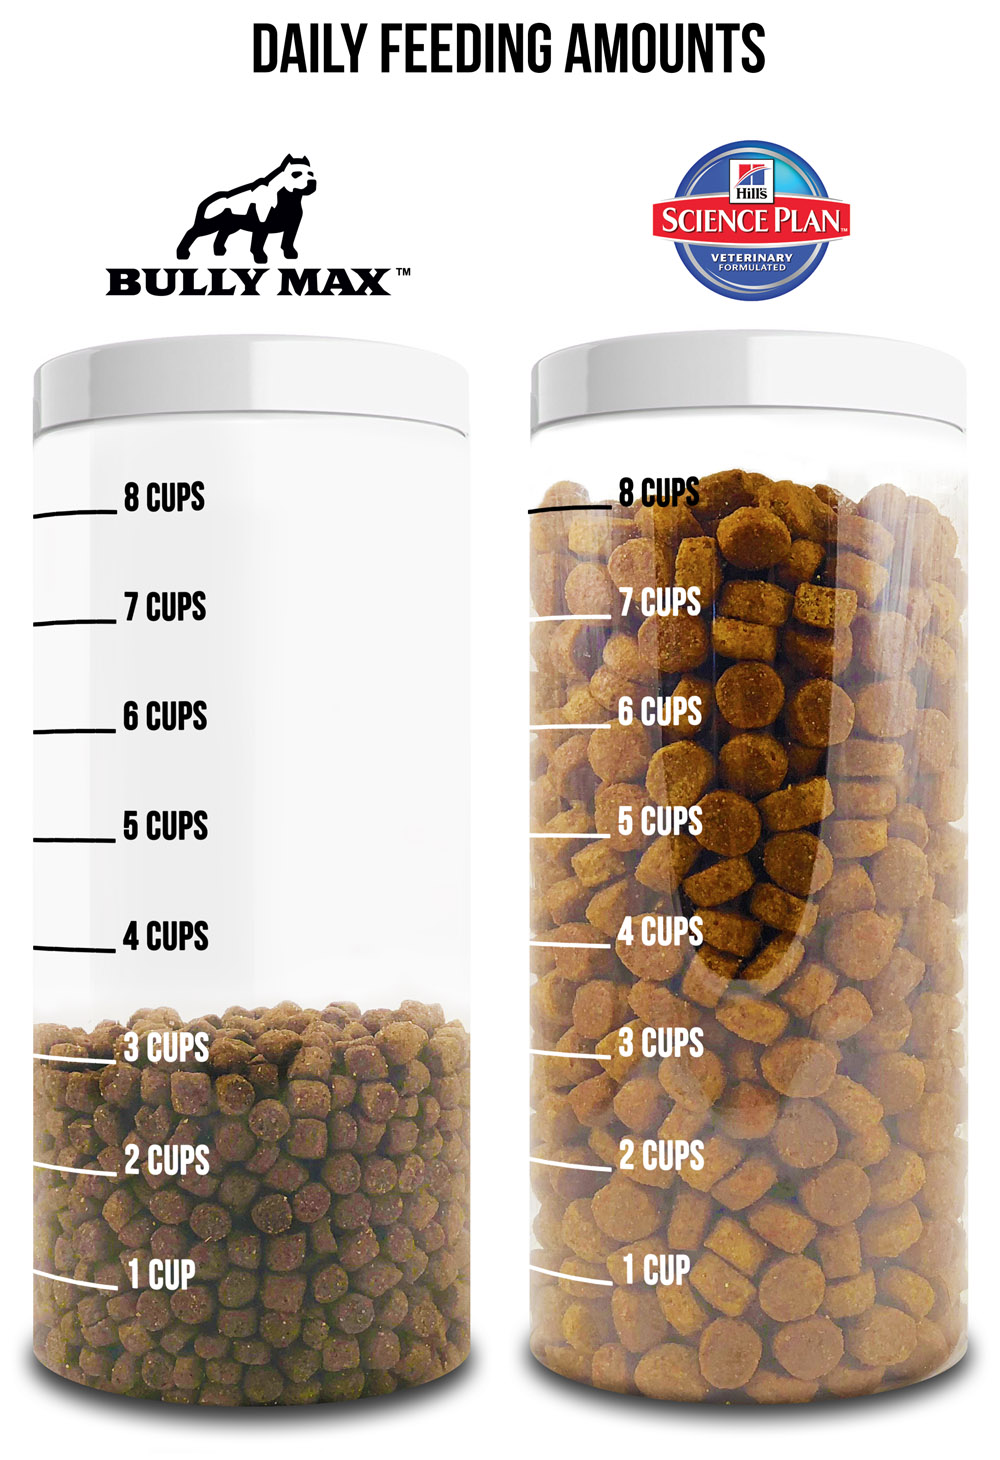 science-diet-comparison-vs-bullymax.jpg